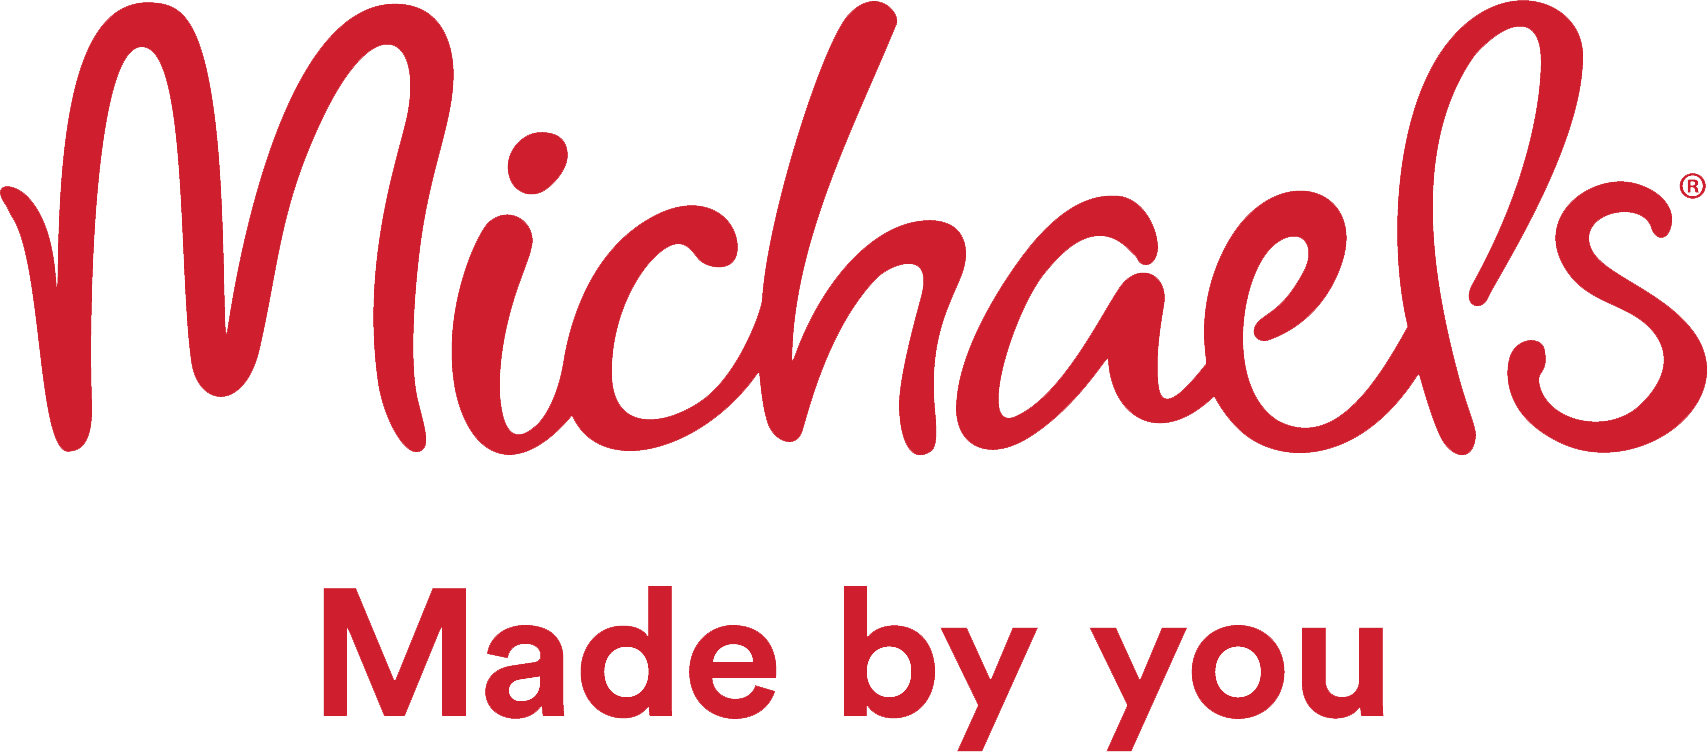 Logotipo de Michaels